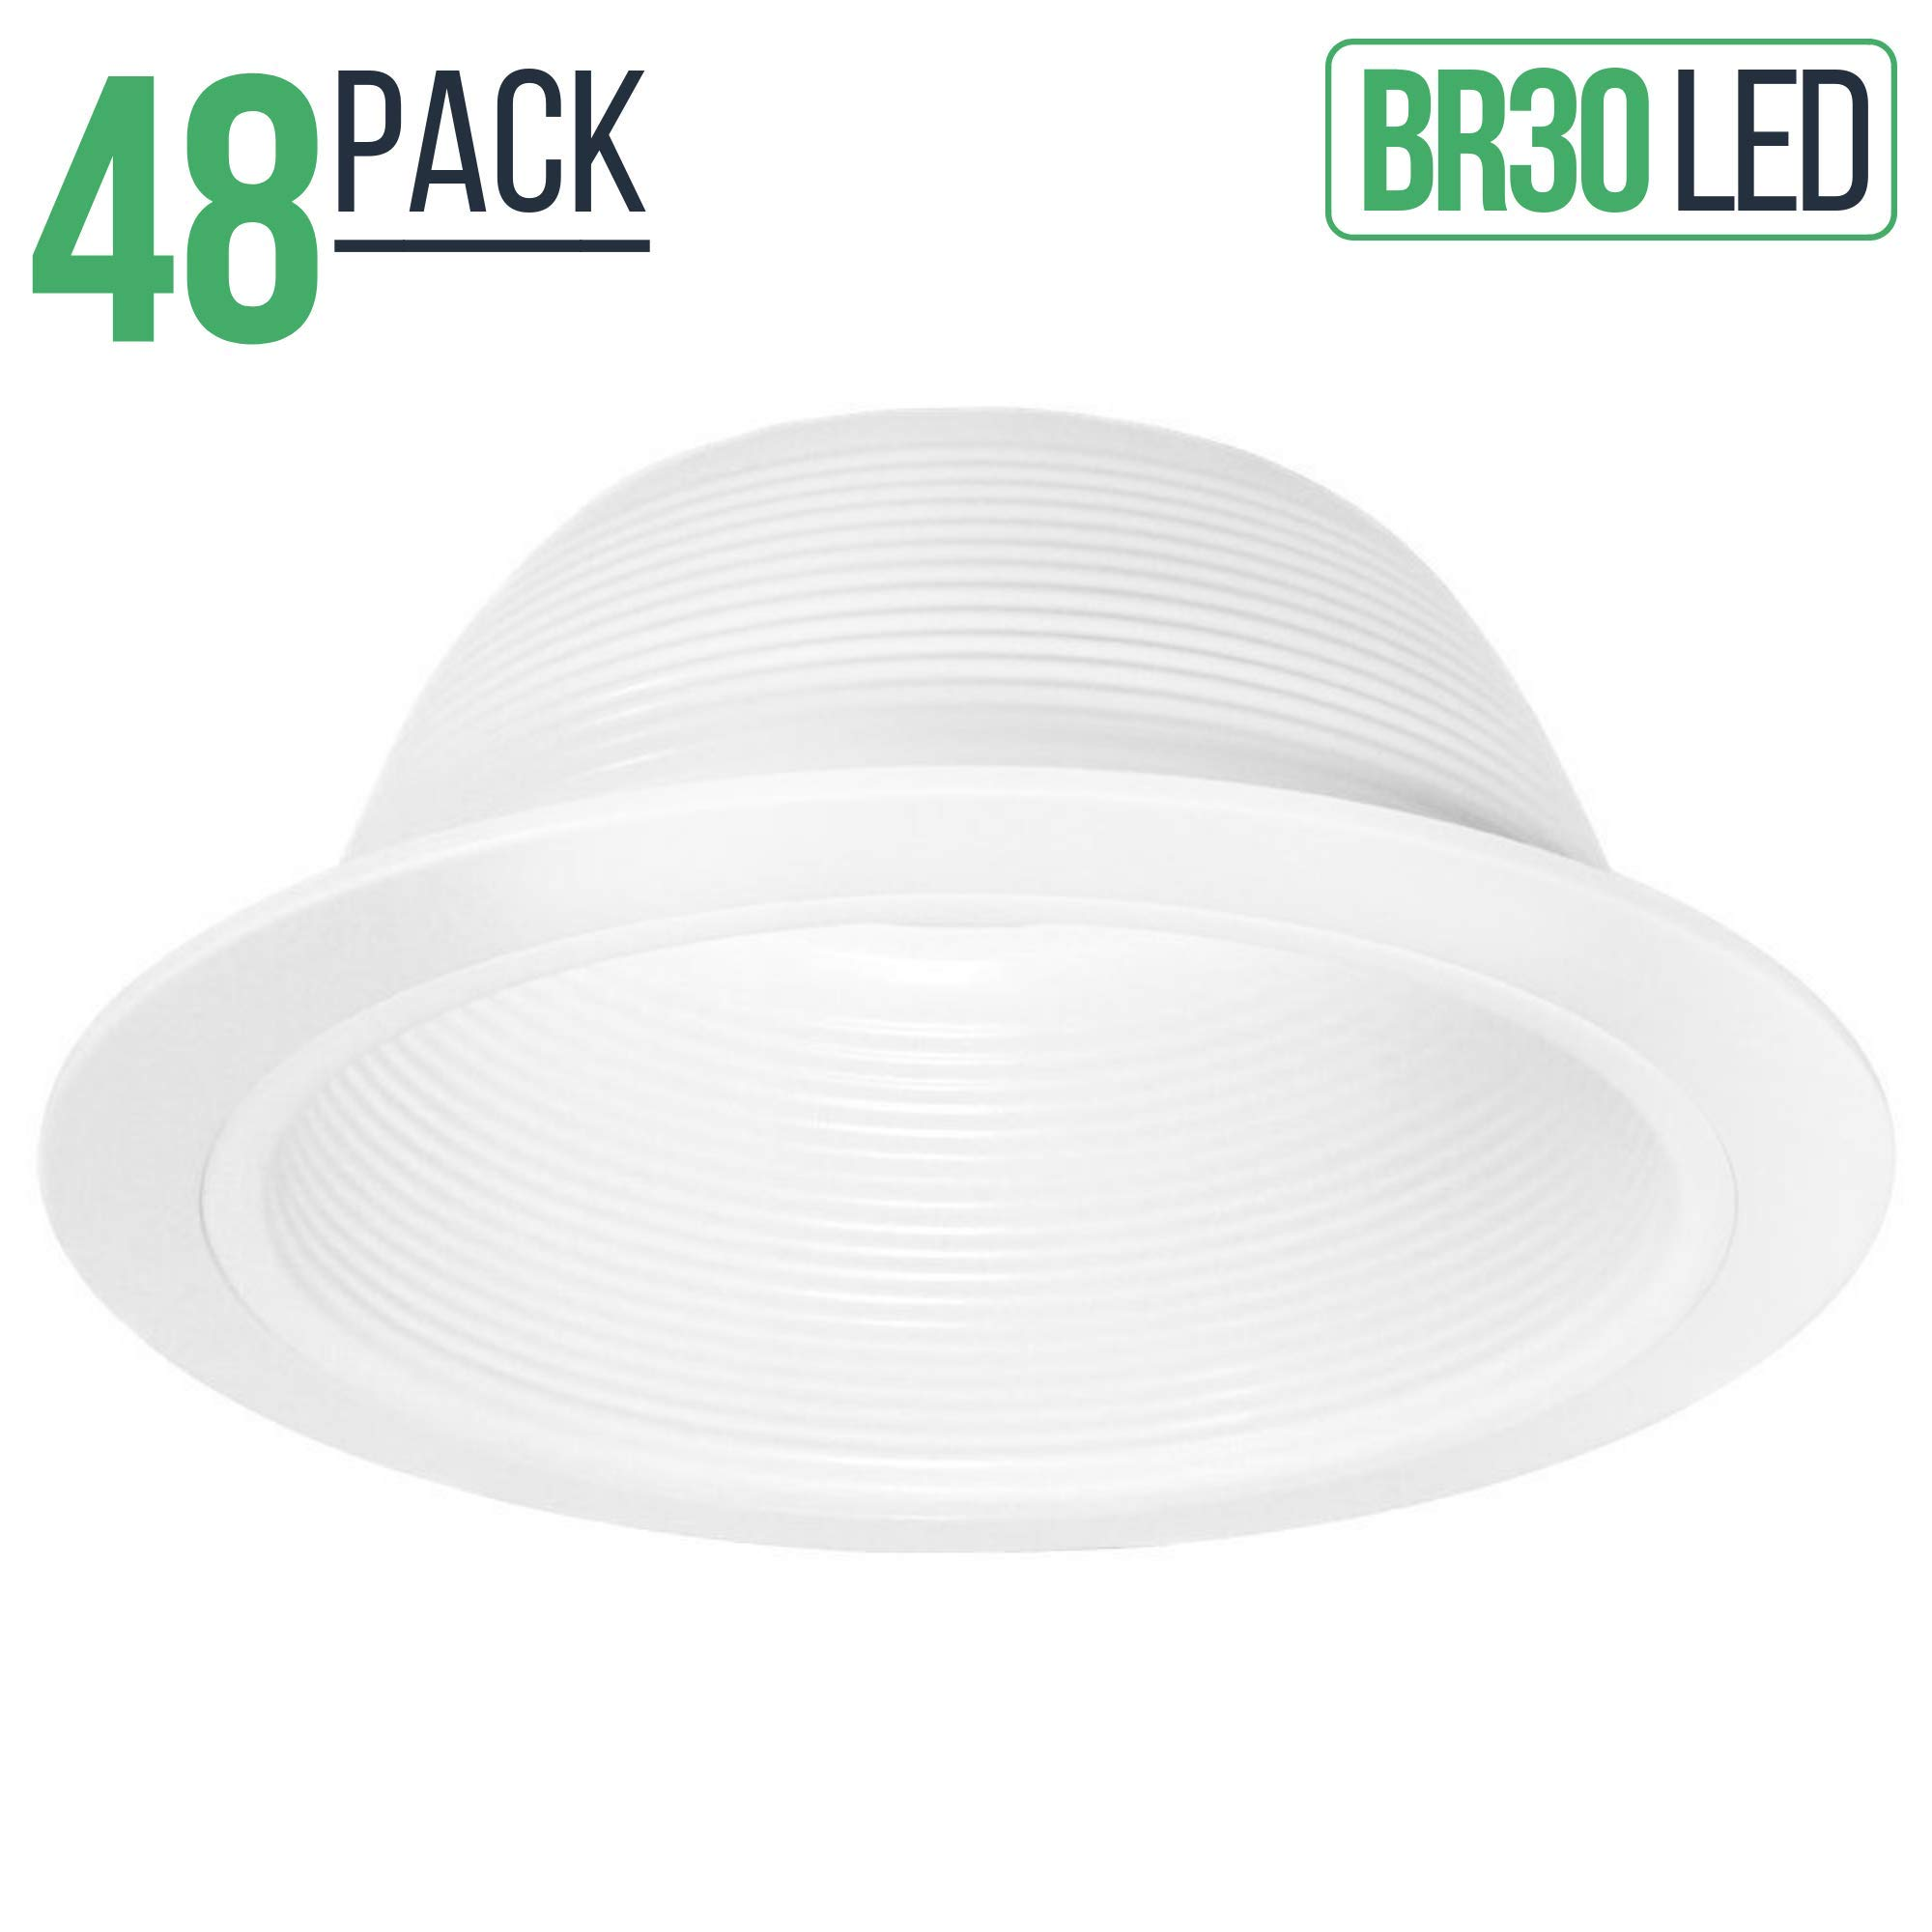 6'' Inch White Baffle Recessed Can Light Trim Replaces Halo 310 W Juno 24W-WH - 48 Pack by Four-Bros Lighting